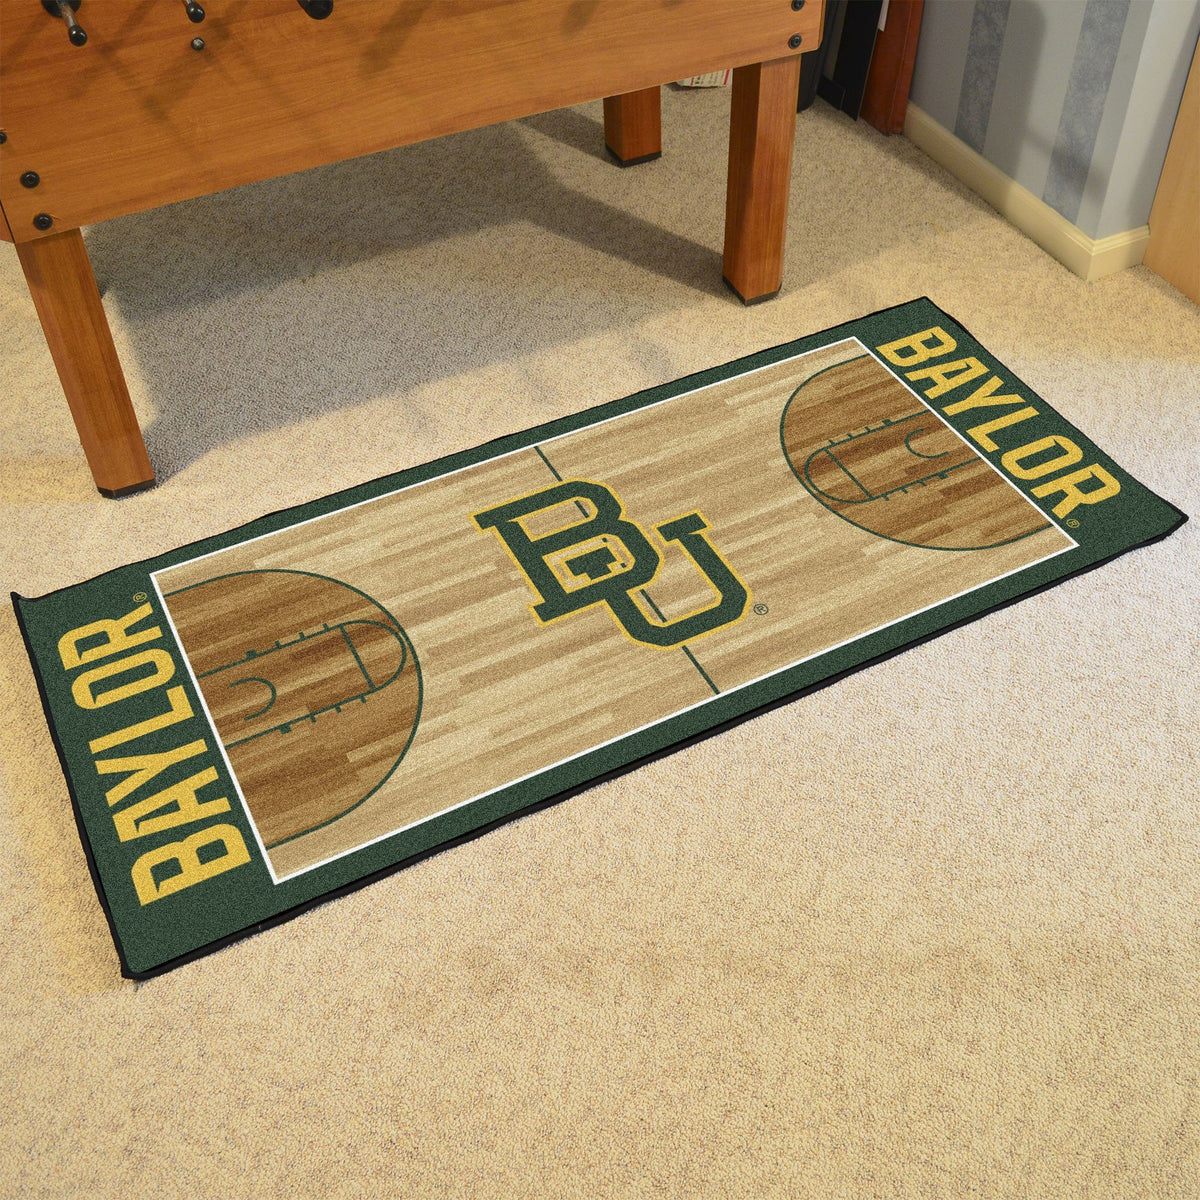 Collegiate - NCAA Basketball Runner Collegiate Mats, Rectangular Mats, NCAA Basketball Runner, Collegiate, Home Fan Mats Baylor